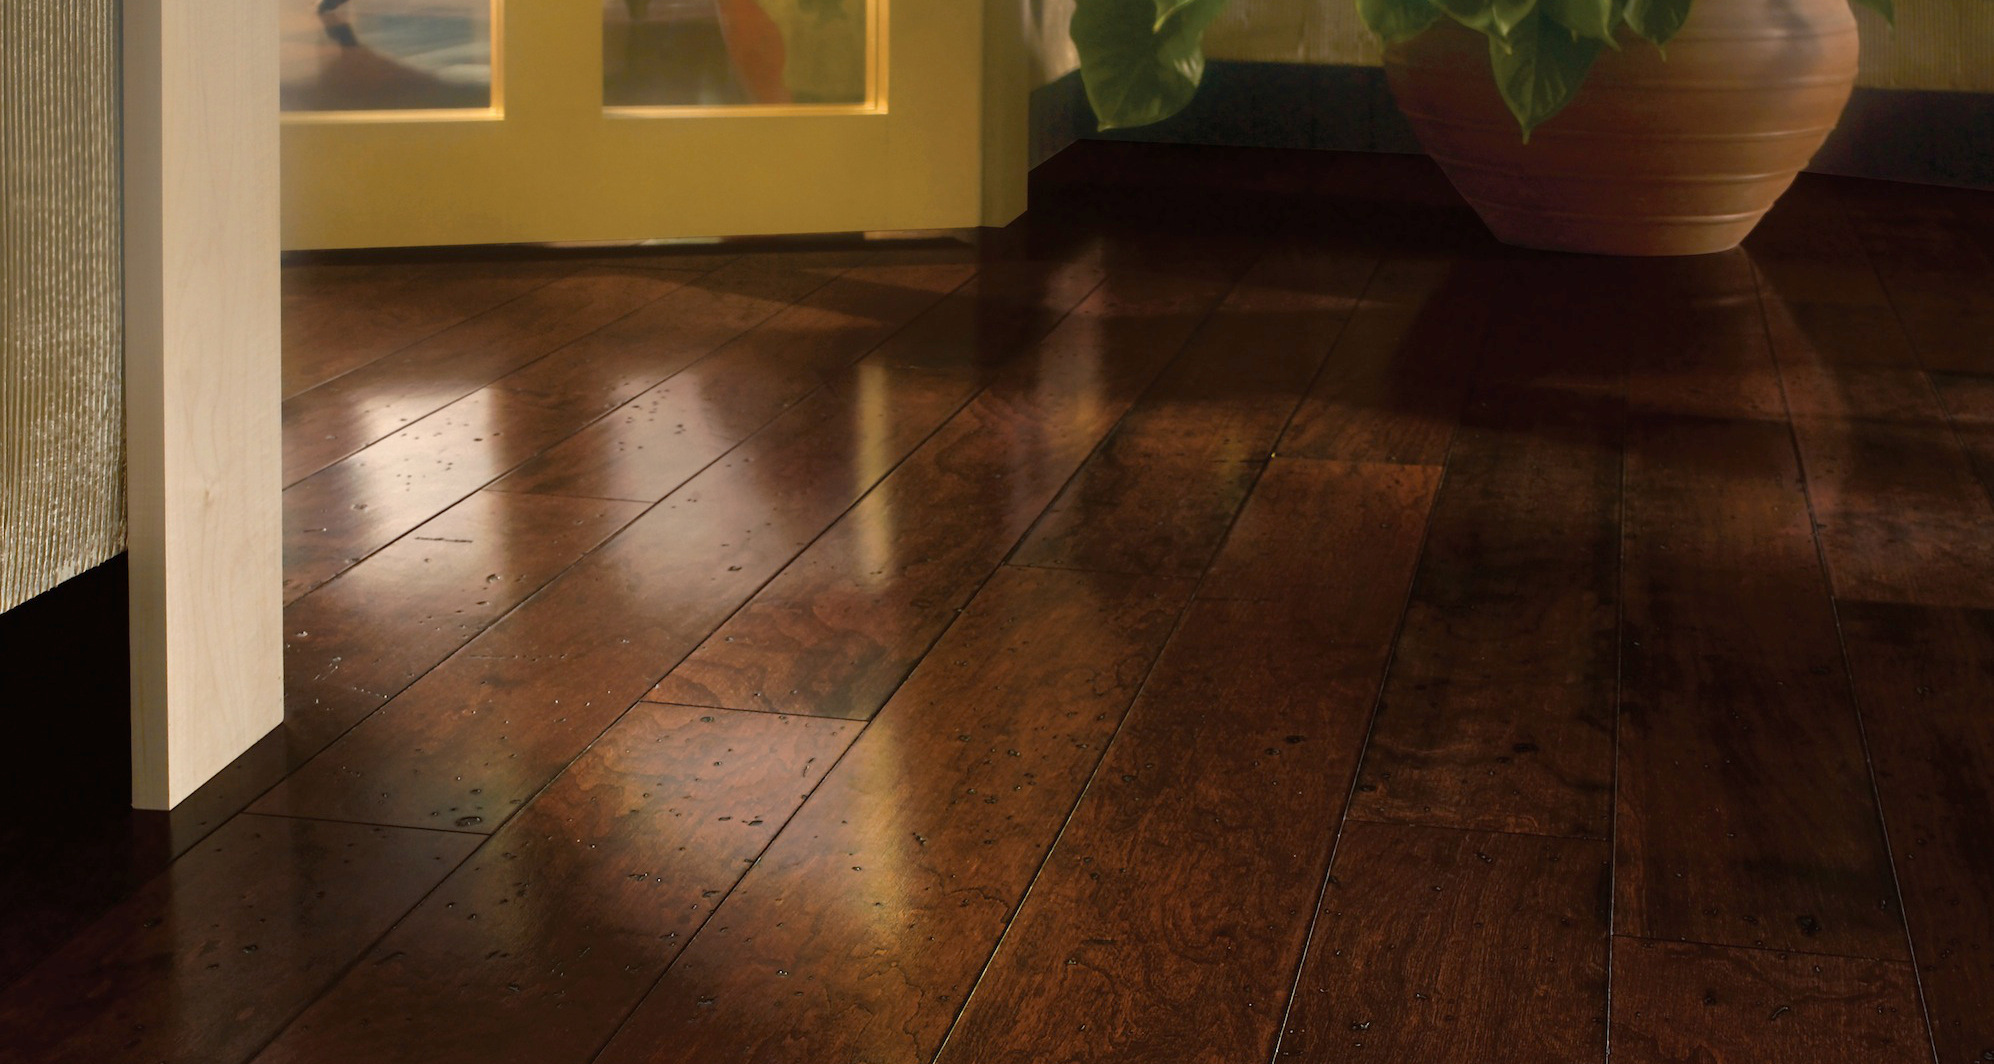 Workman Flooring Hardwood Floors